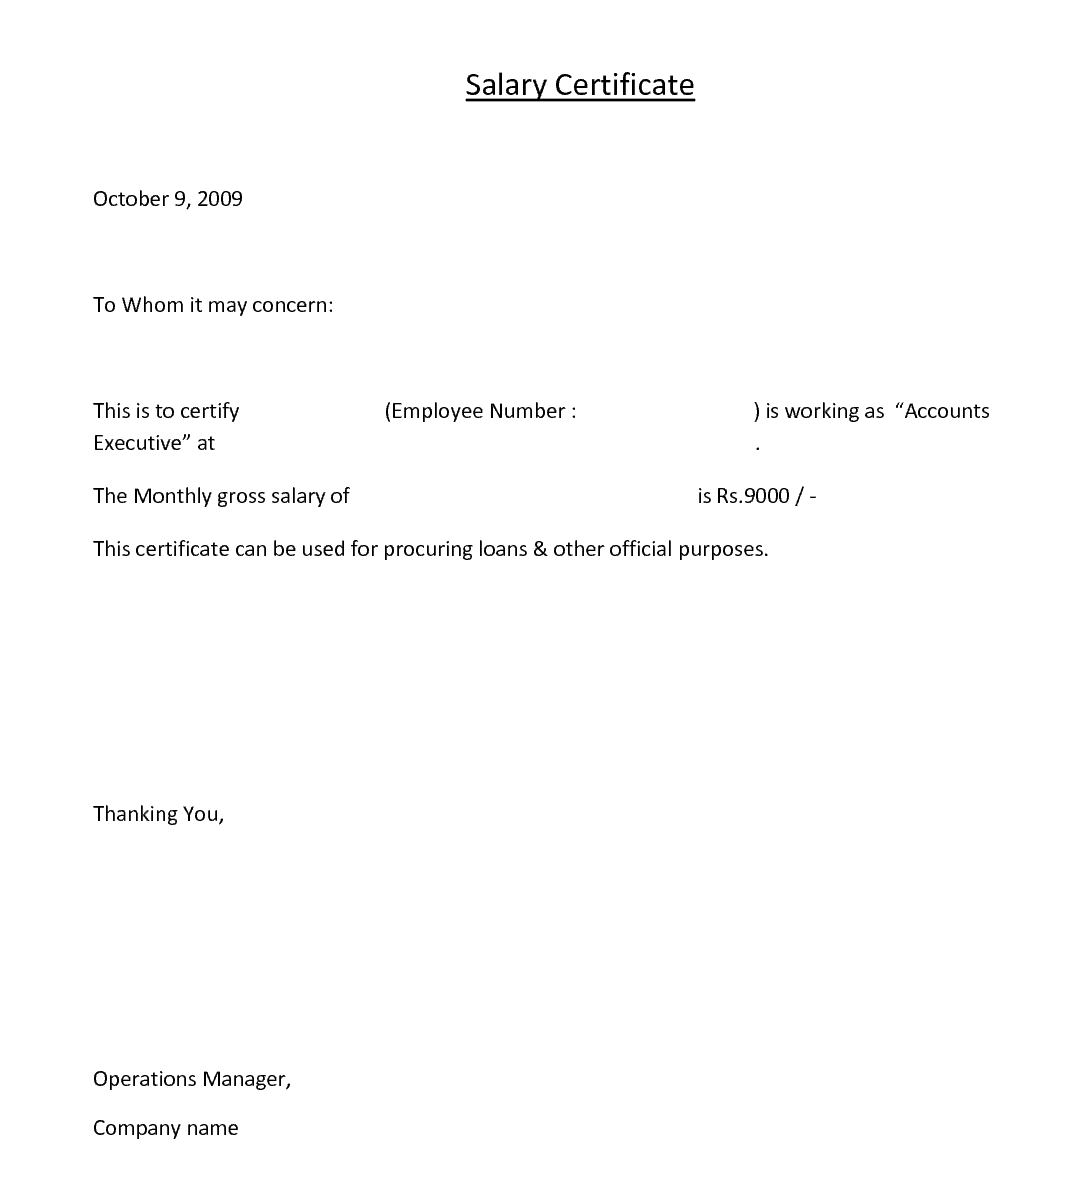 Salary Request Letter Free Sample Letters Salary Certificate Letter